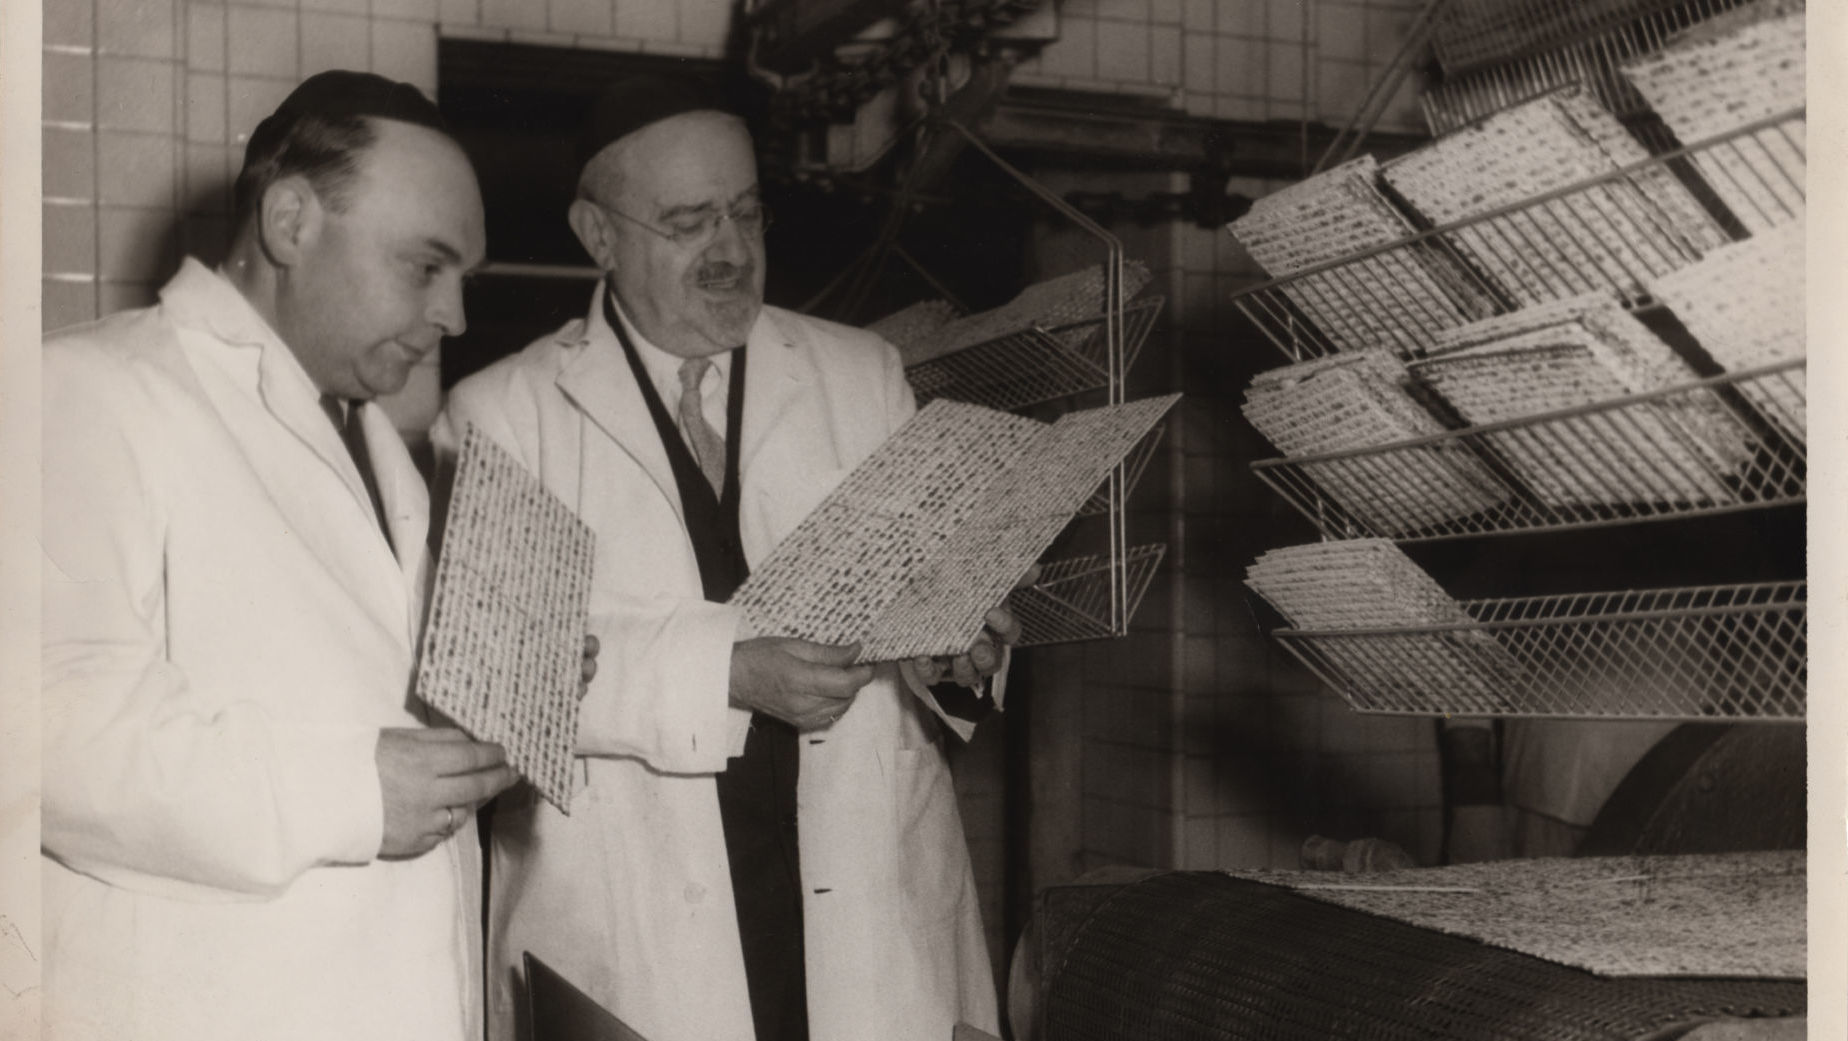 Archival photo from Streit's: Matzo and the American Dream. Credit: Menemsha Films